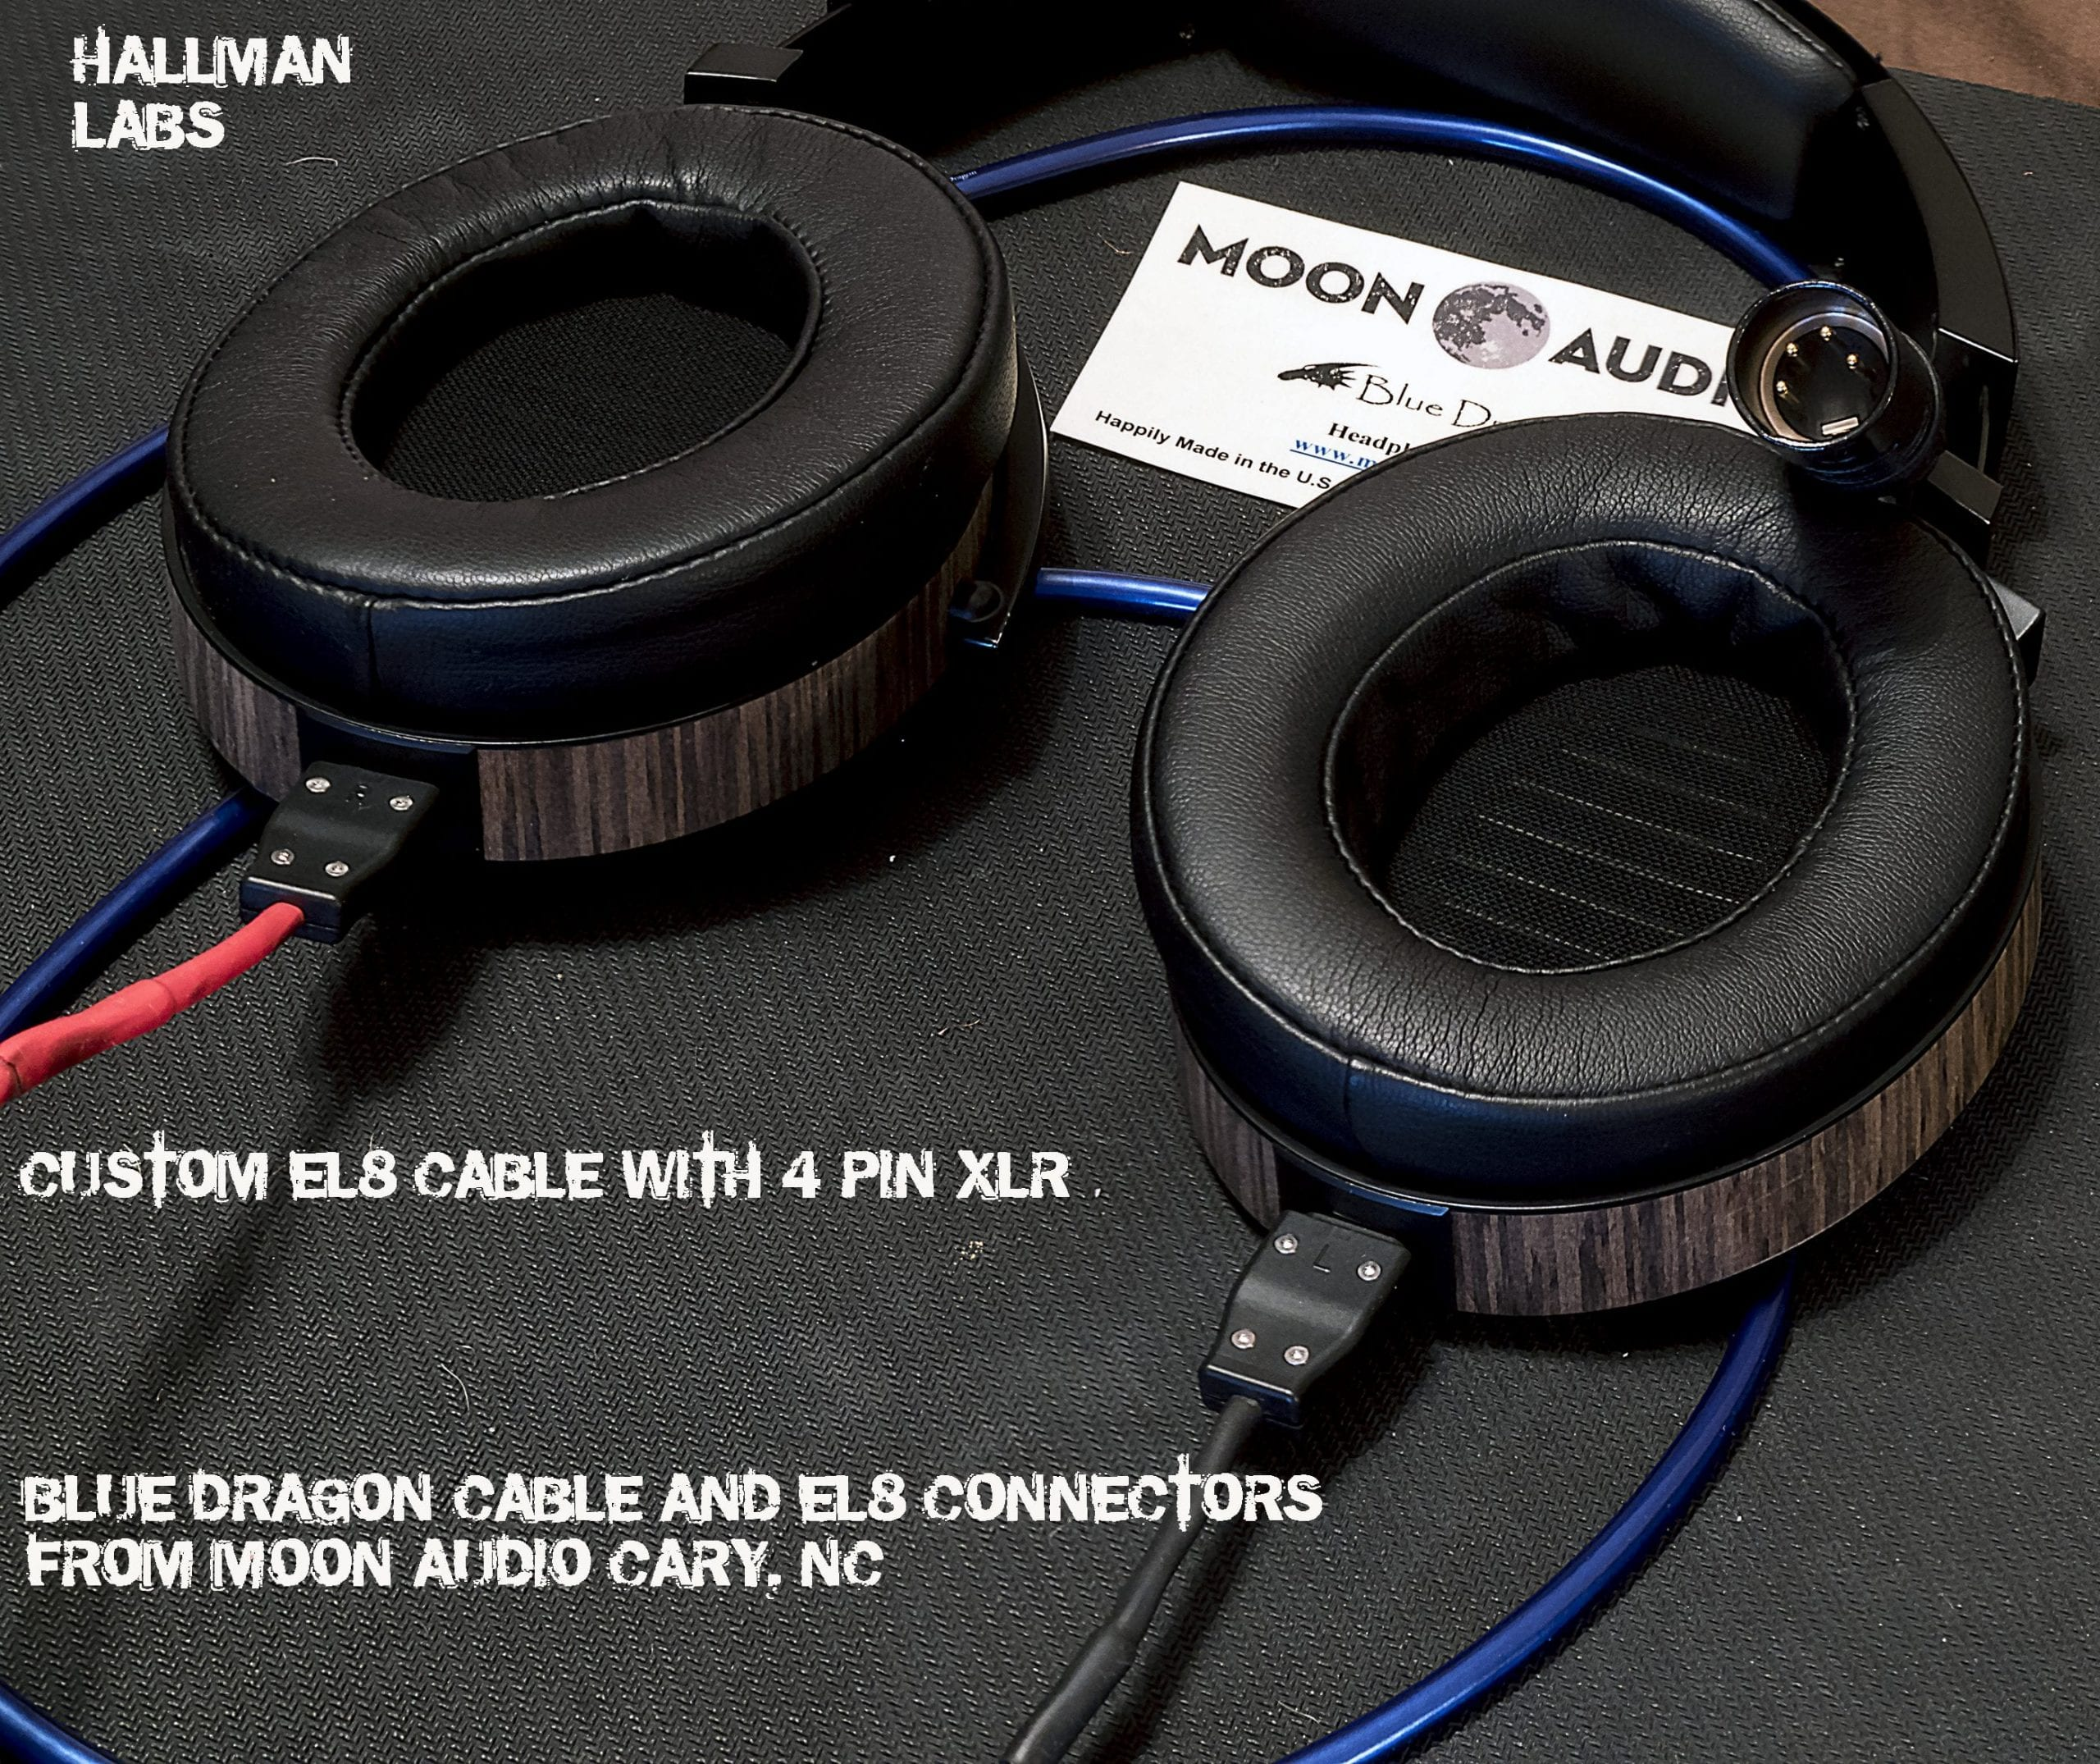 How To Custom El 8 Cable For 4 Pin Xlr Using Moon Audio S Blue Dragon Hallman Labs